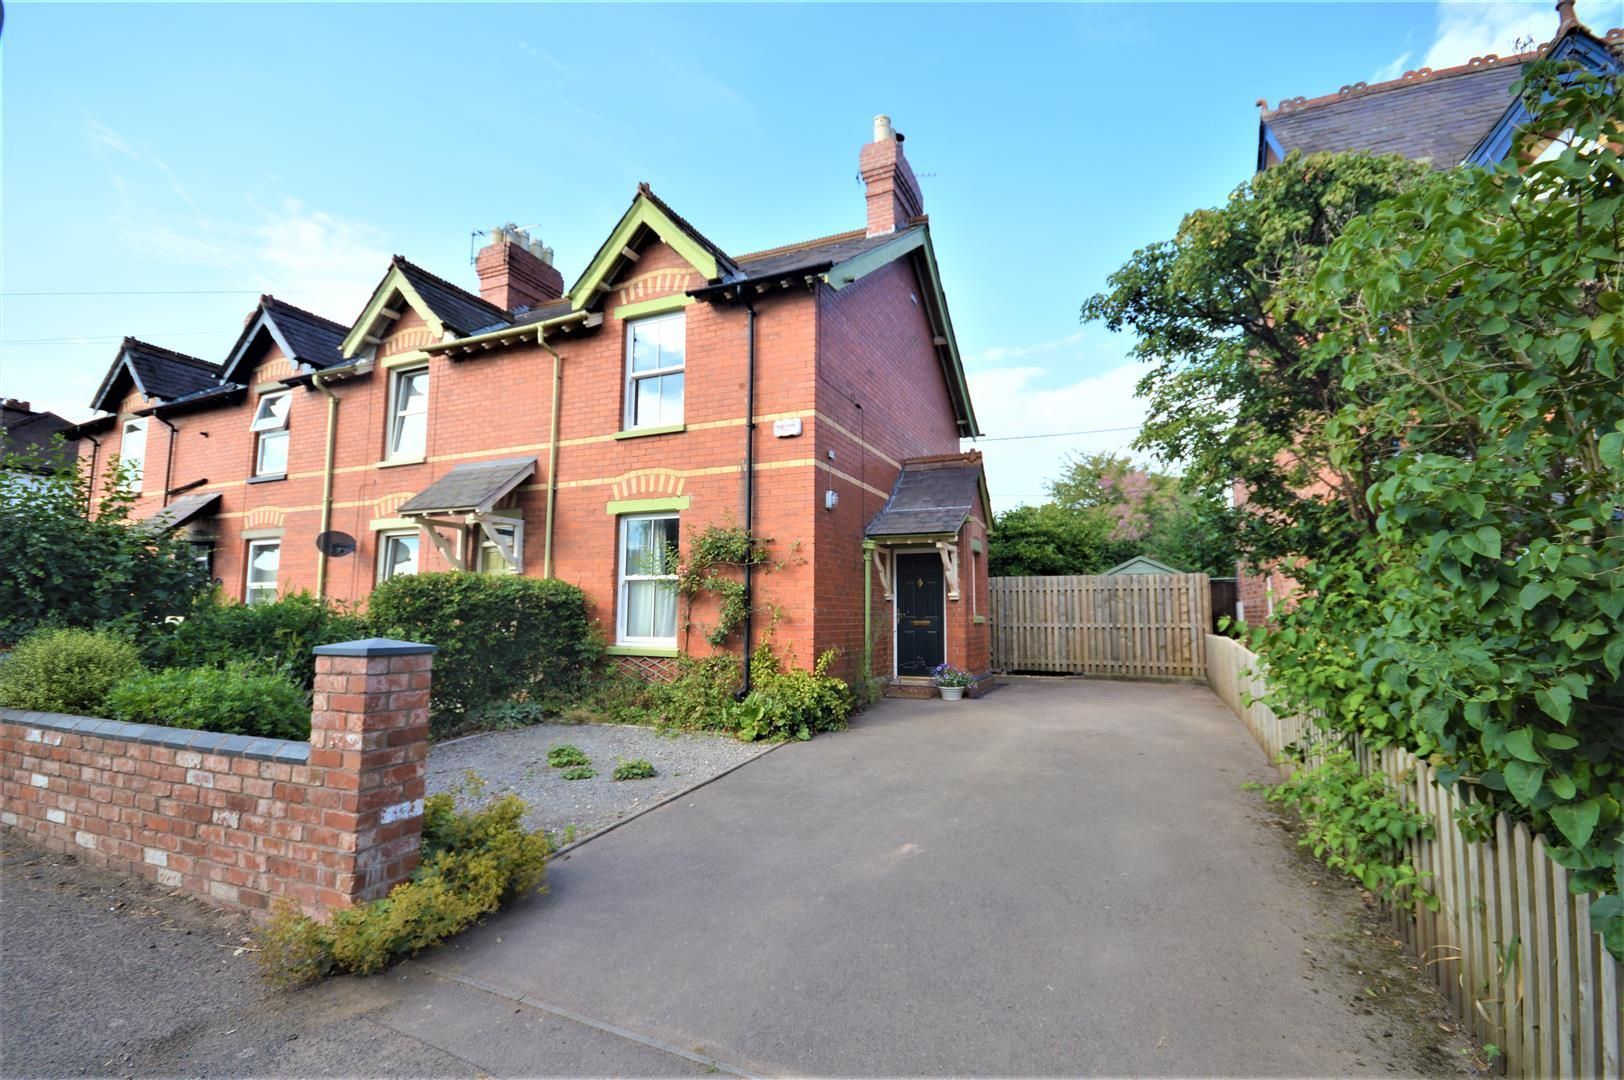 2 bed semi-detached for sale in Burghill, HR4